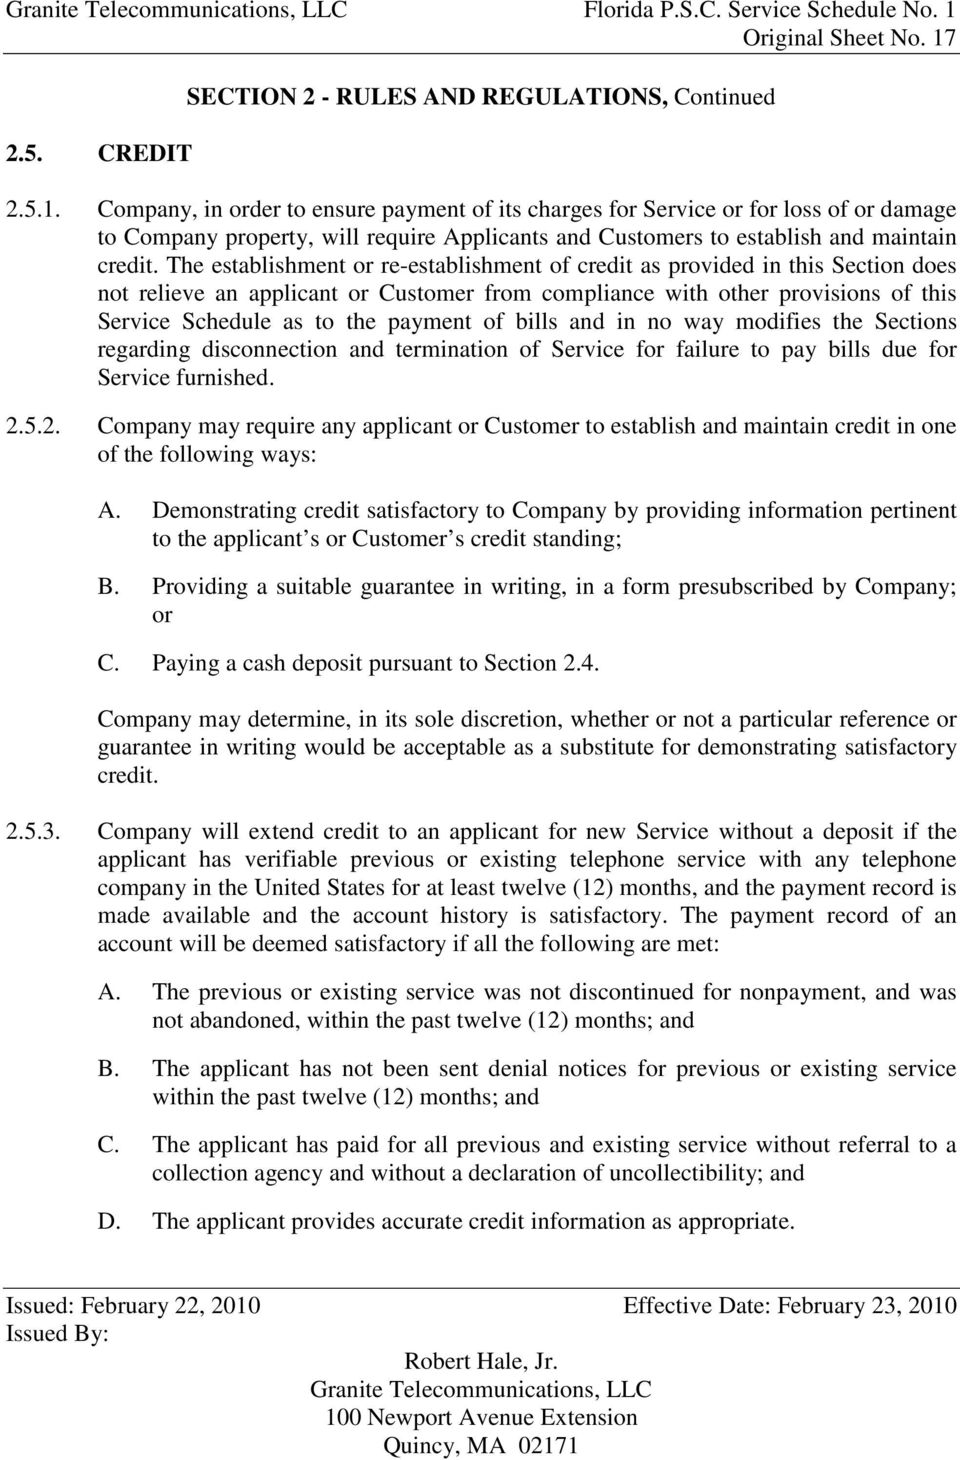 2.5. CREDIT SECTION 2 - RULES AND REGULATIONS, Continued 2.5.1.